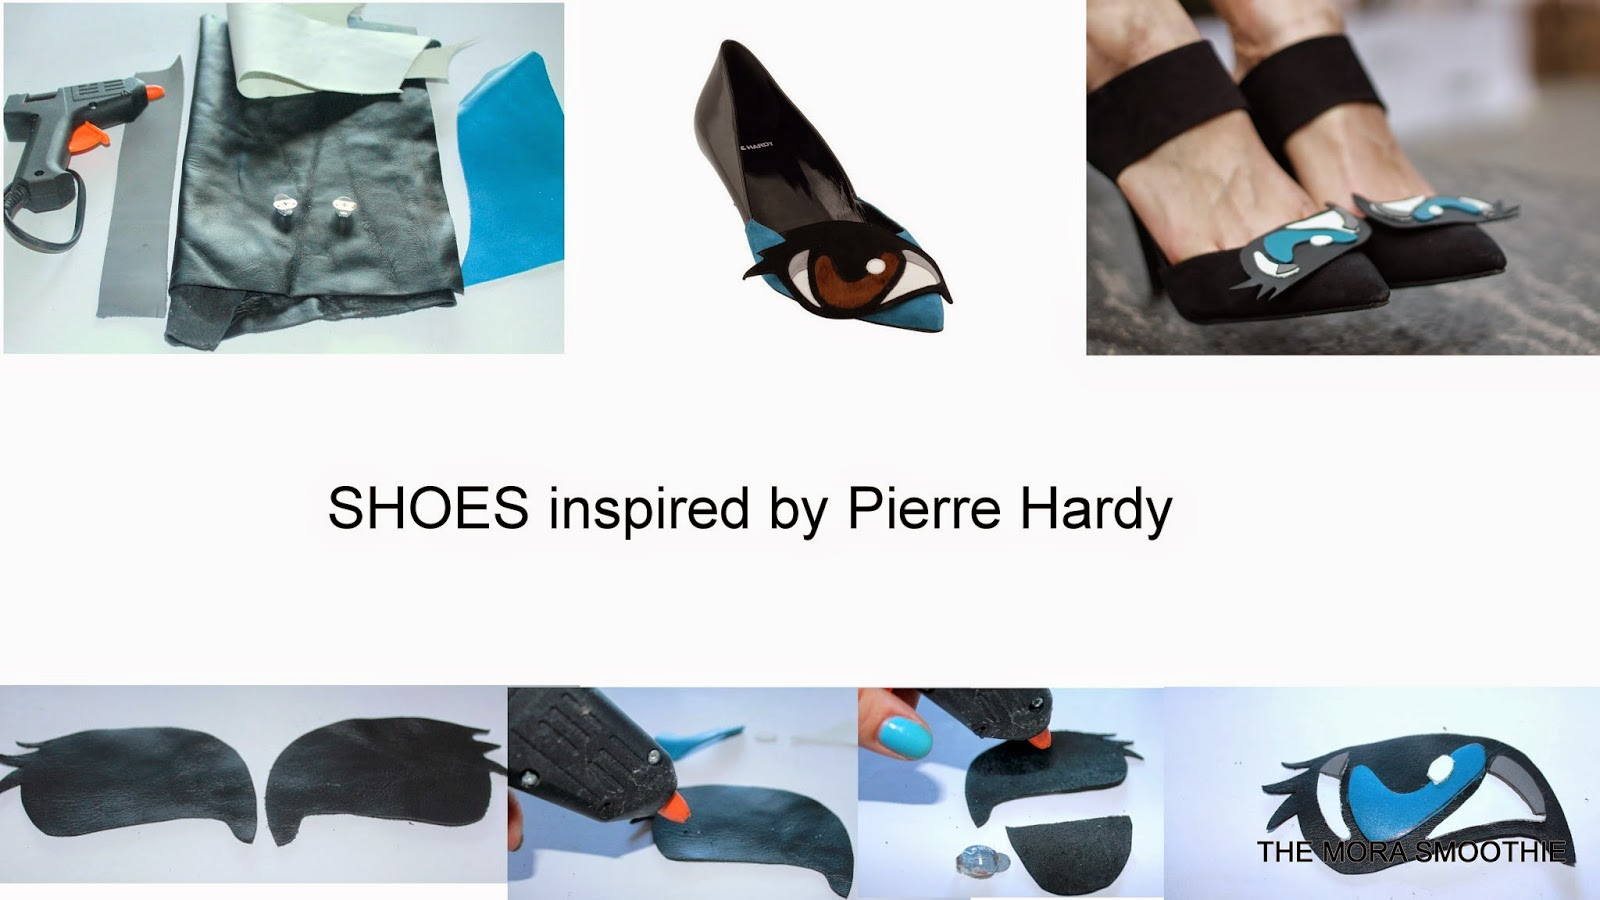 diy, diy shoes, pierre hardy, oh roy, diy pierre hardy, occhio, eyes, fashion, fashion shoes, tutorial shoes, fashionblog, fashionblogger, diycraft, craft, project, themorasmoothie